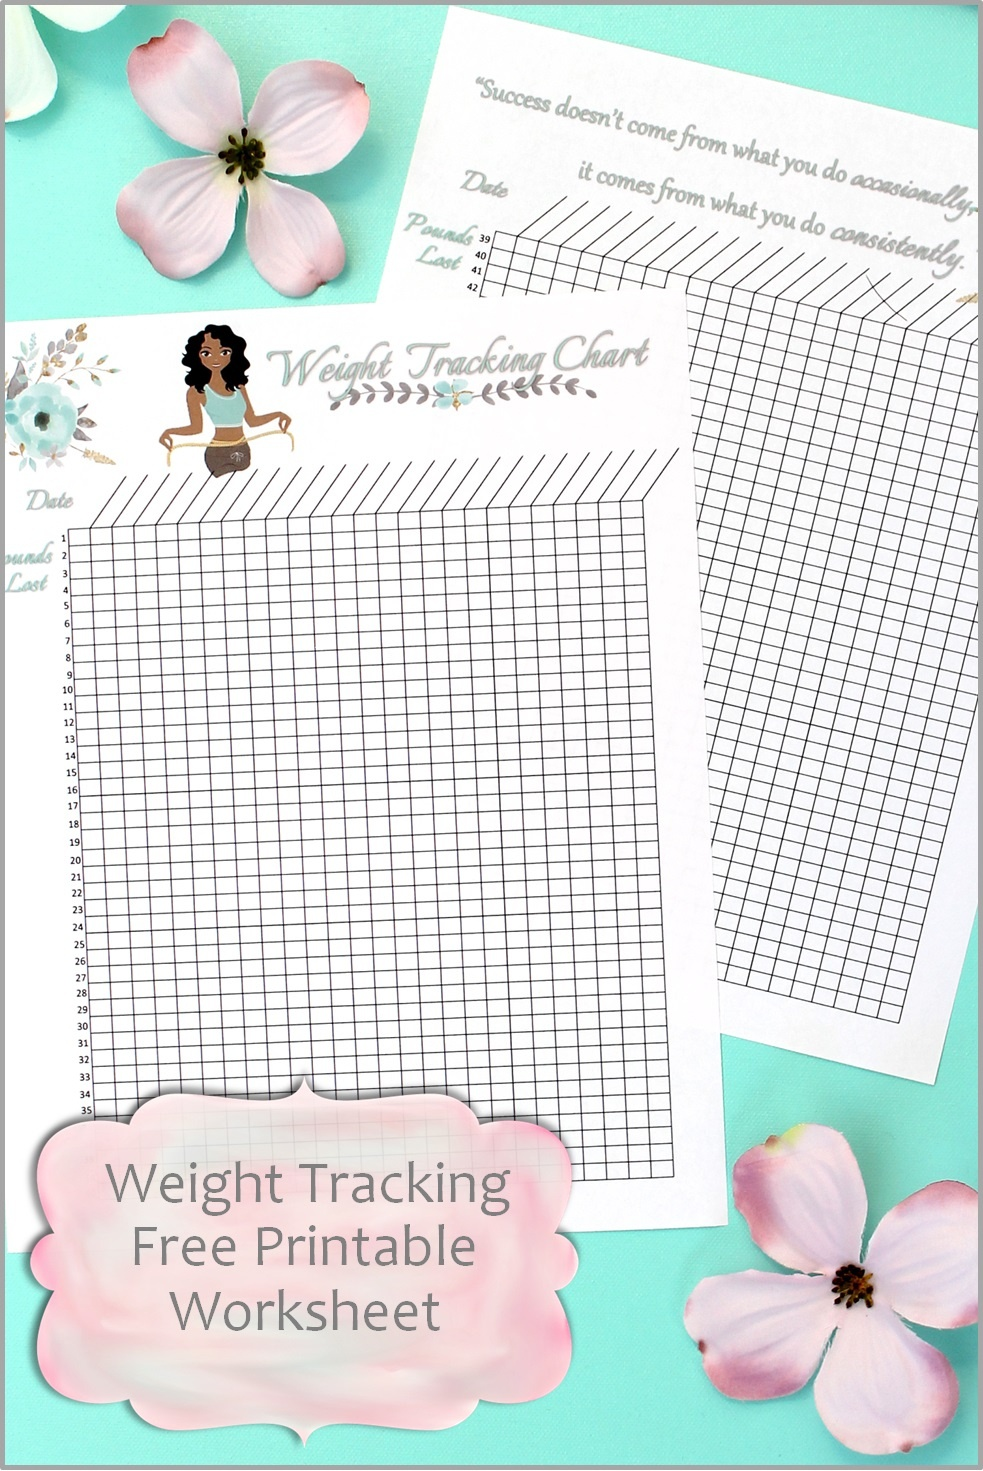 Weight Tracking Chart Free Printable Worksheet – Smart And Savvy Mom - Printable Weight Loss Charts Free